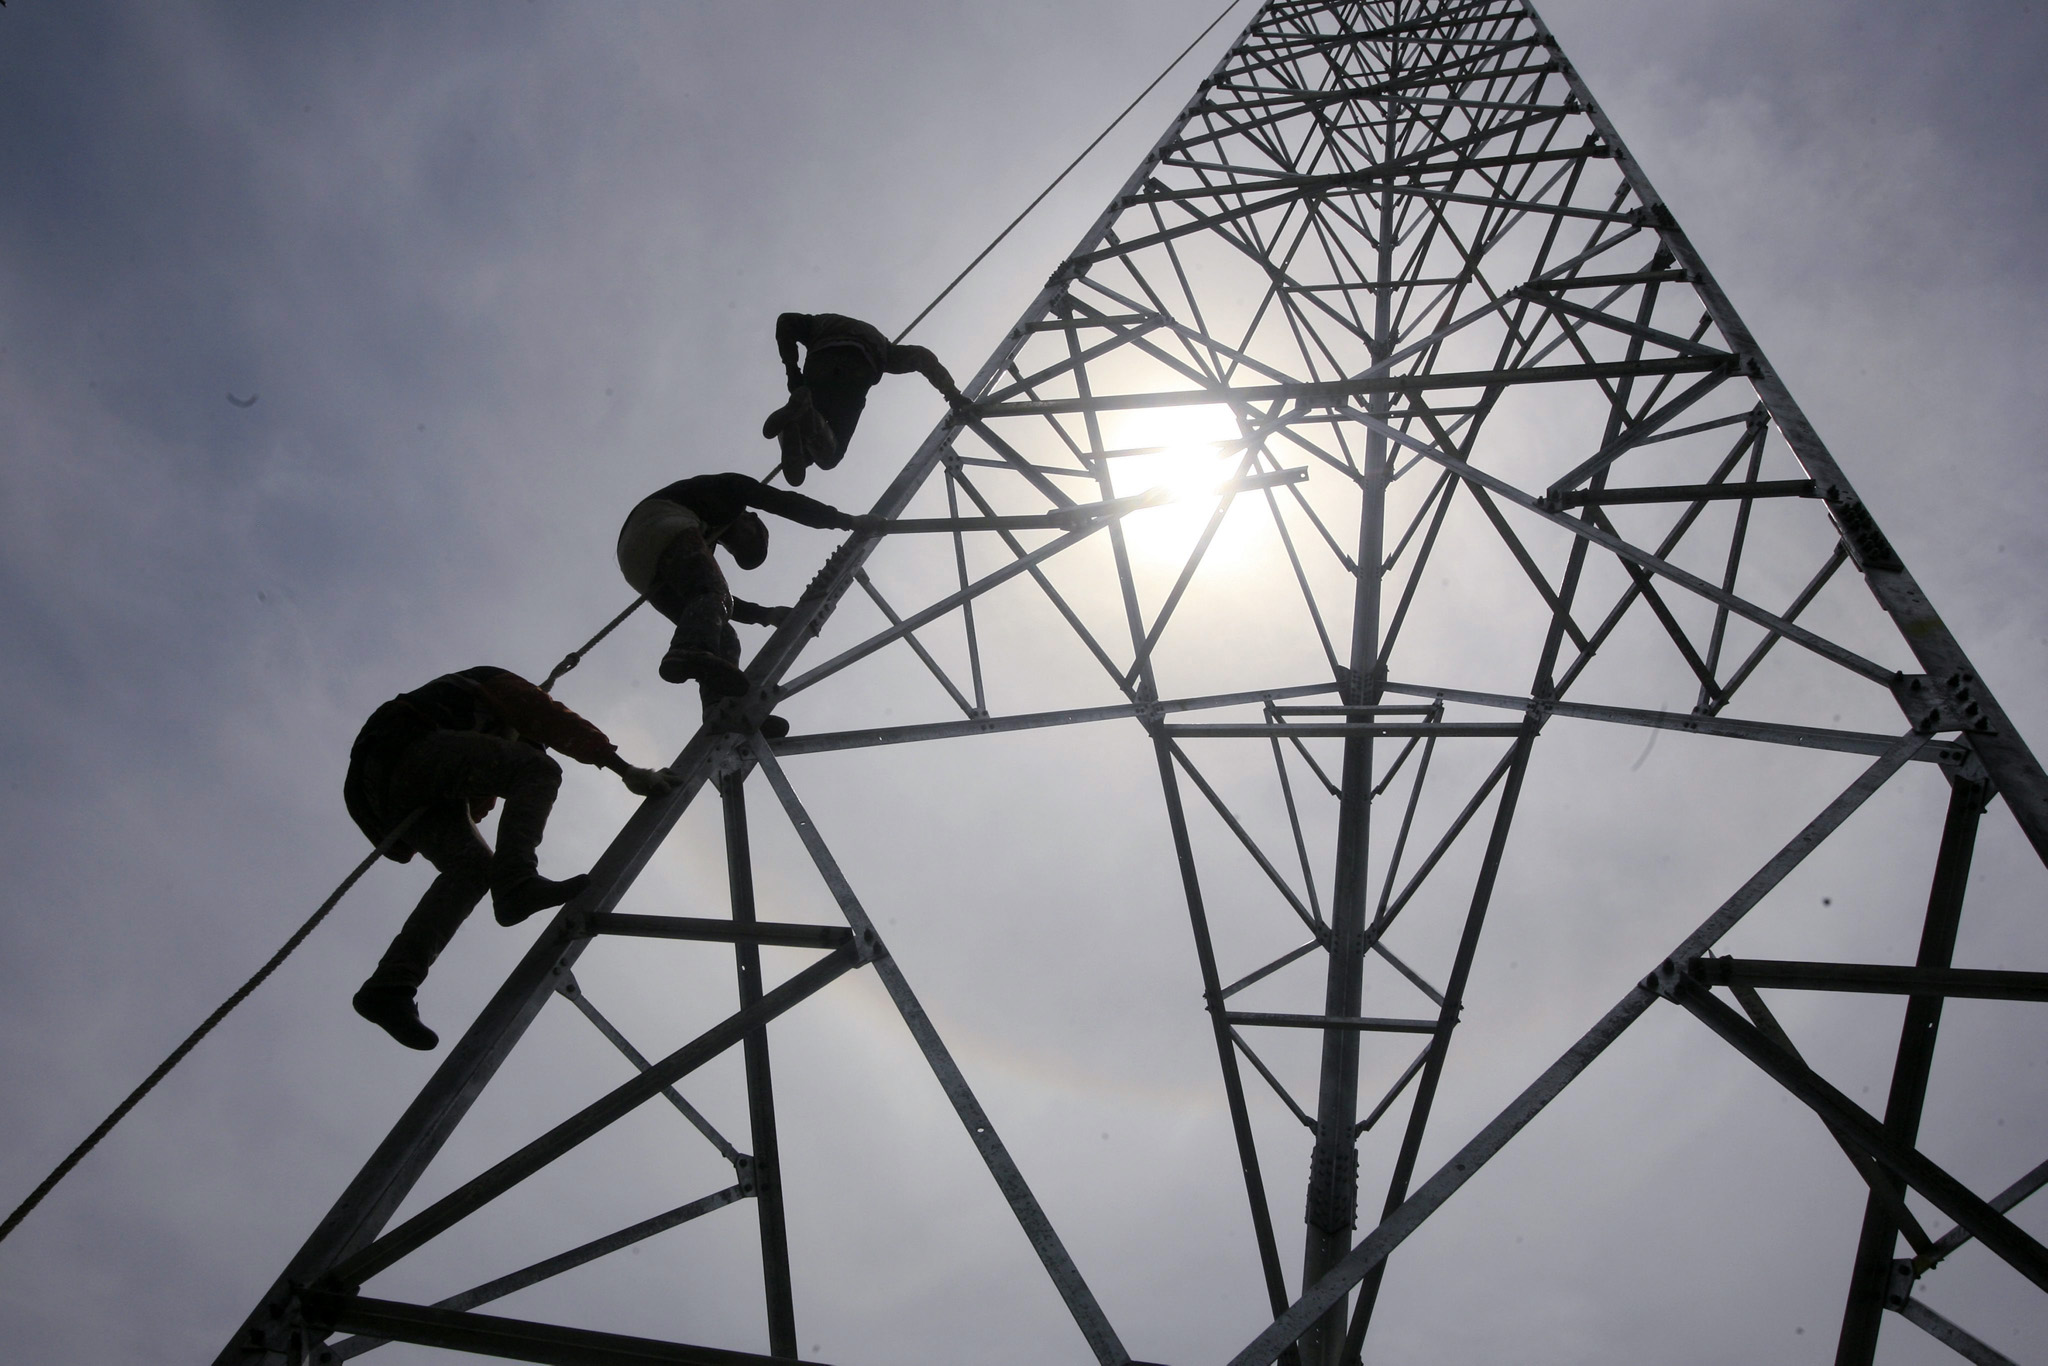 Increasing number of telecommunication users requires improvement of infrastructure...epaselect epa04227454 Workers climb to install a 60-meters telecommunication tower in Banda Aceh, Indonesia, 27 May 2014. The increasing number of users of mobile devices in Indonesia requires the telecommunications service providers to improve their infrastructure such as the additional installation of cell towers in densely populated areas. Indonesia is one of the largest mobile phone users in Asia.  EPA/HOTLI SIMANJUNTAK